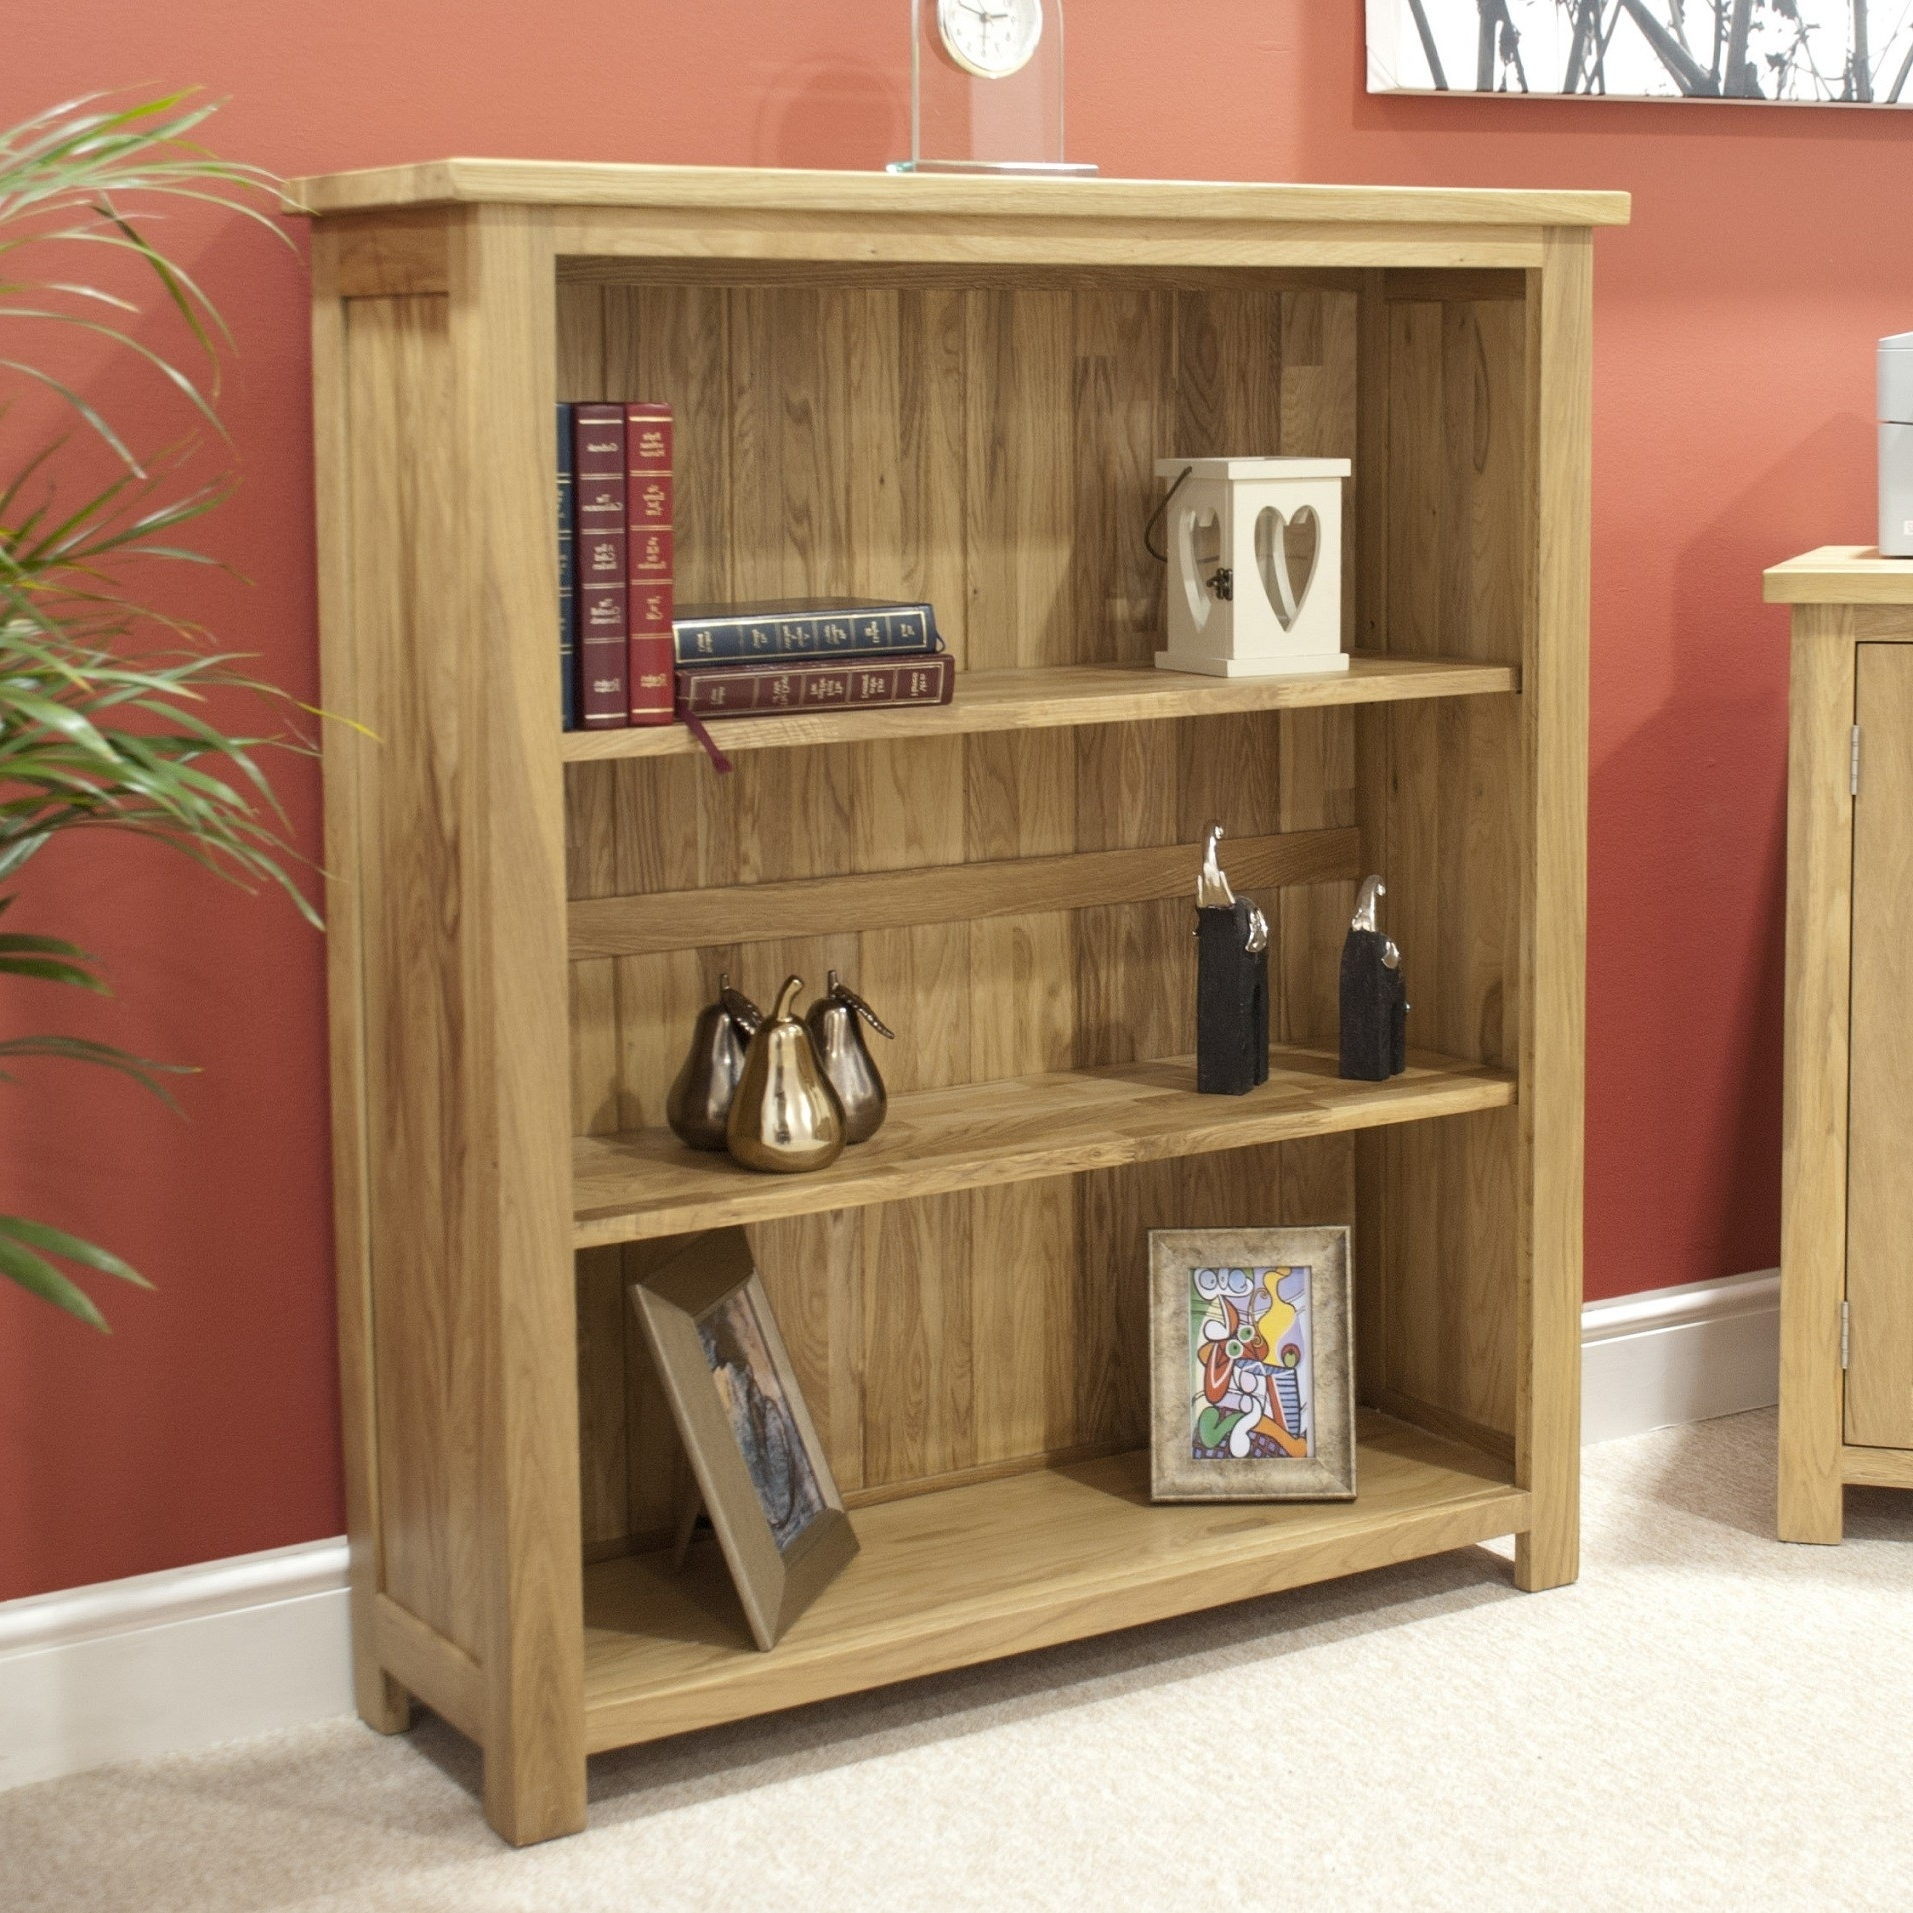 High Quality Bookcases Intended For Well Known Bookshelf: Fancy Bookcase 2017 Design Ideas Diy Modular Bookshelf (View 12 of 15)